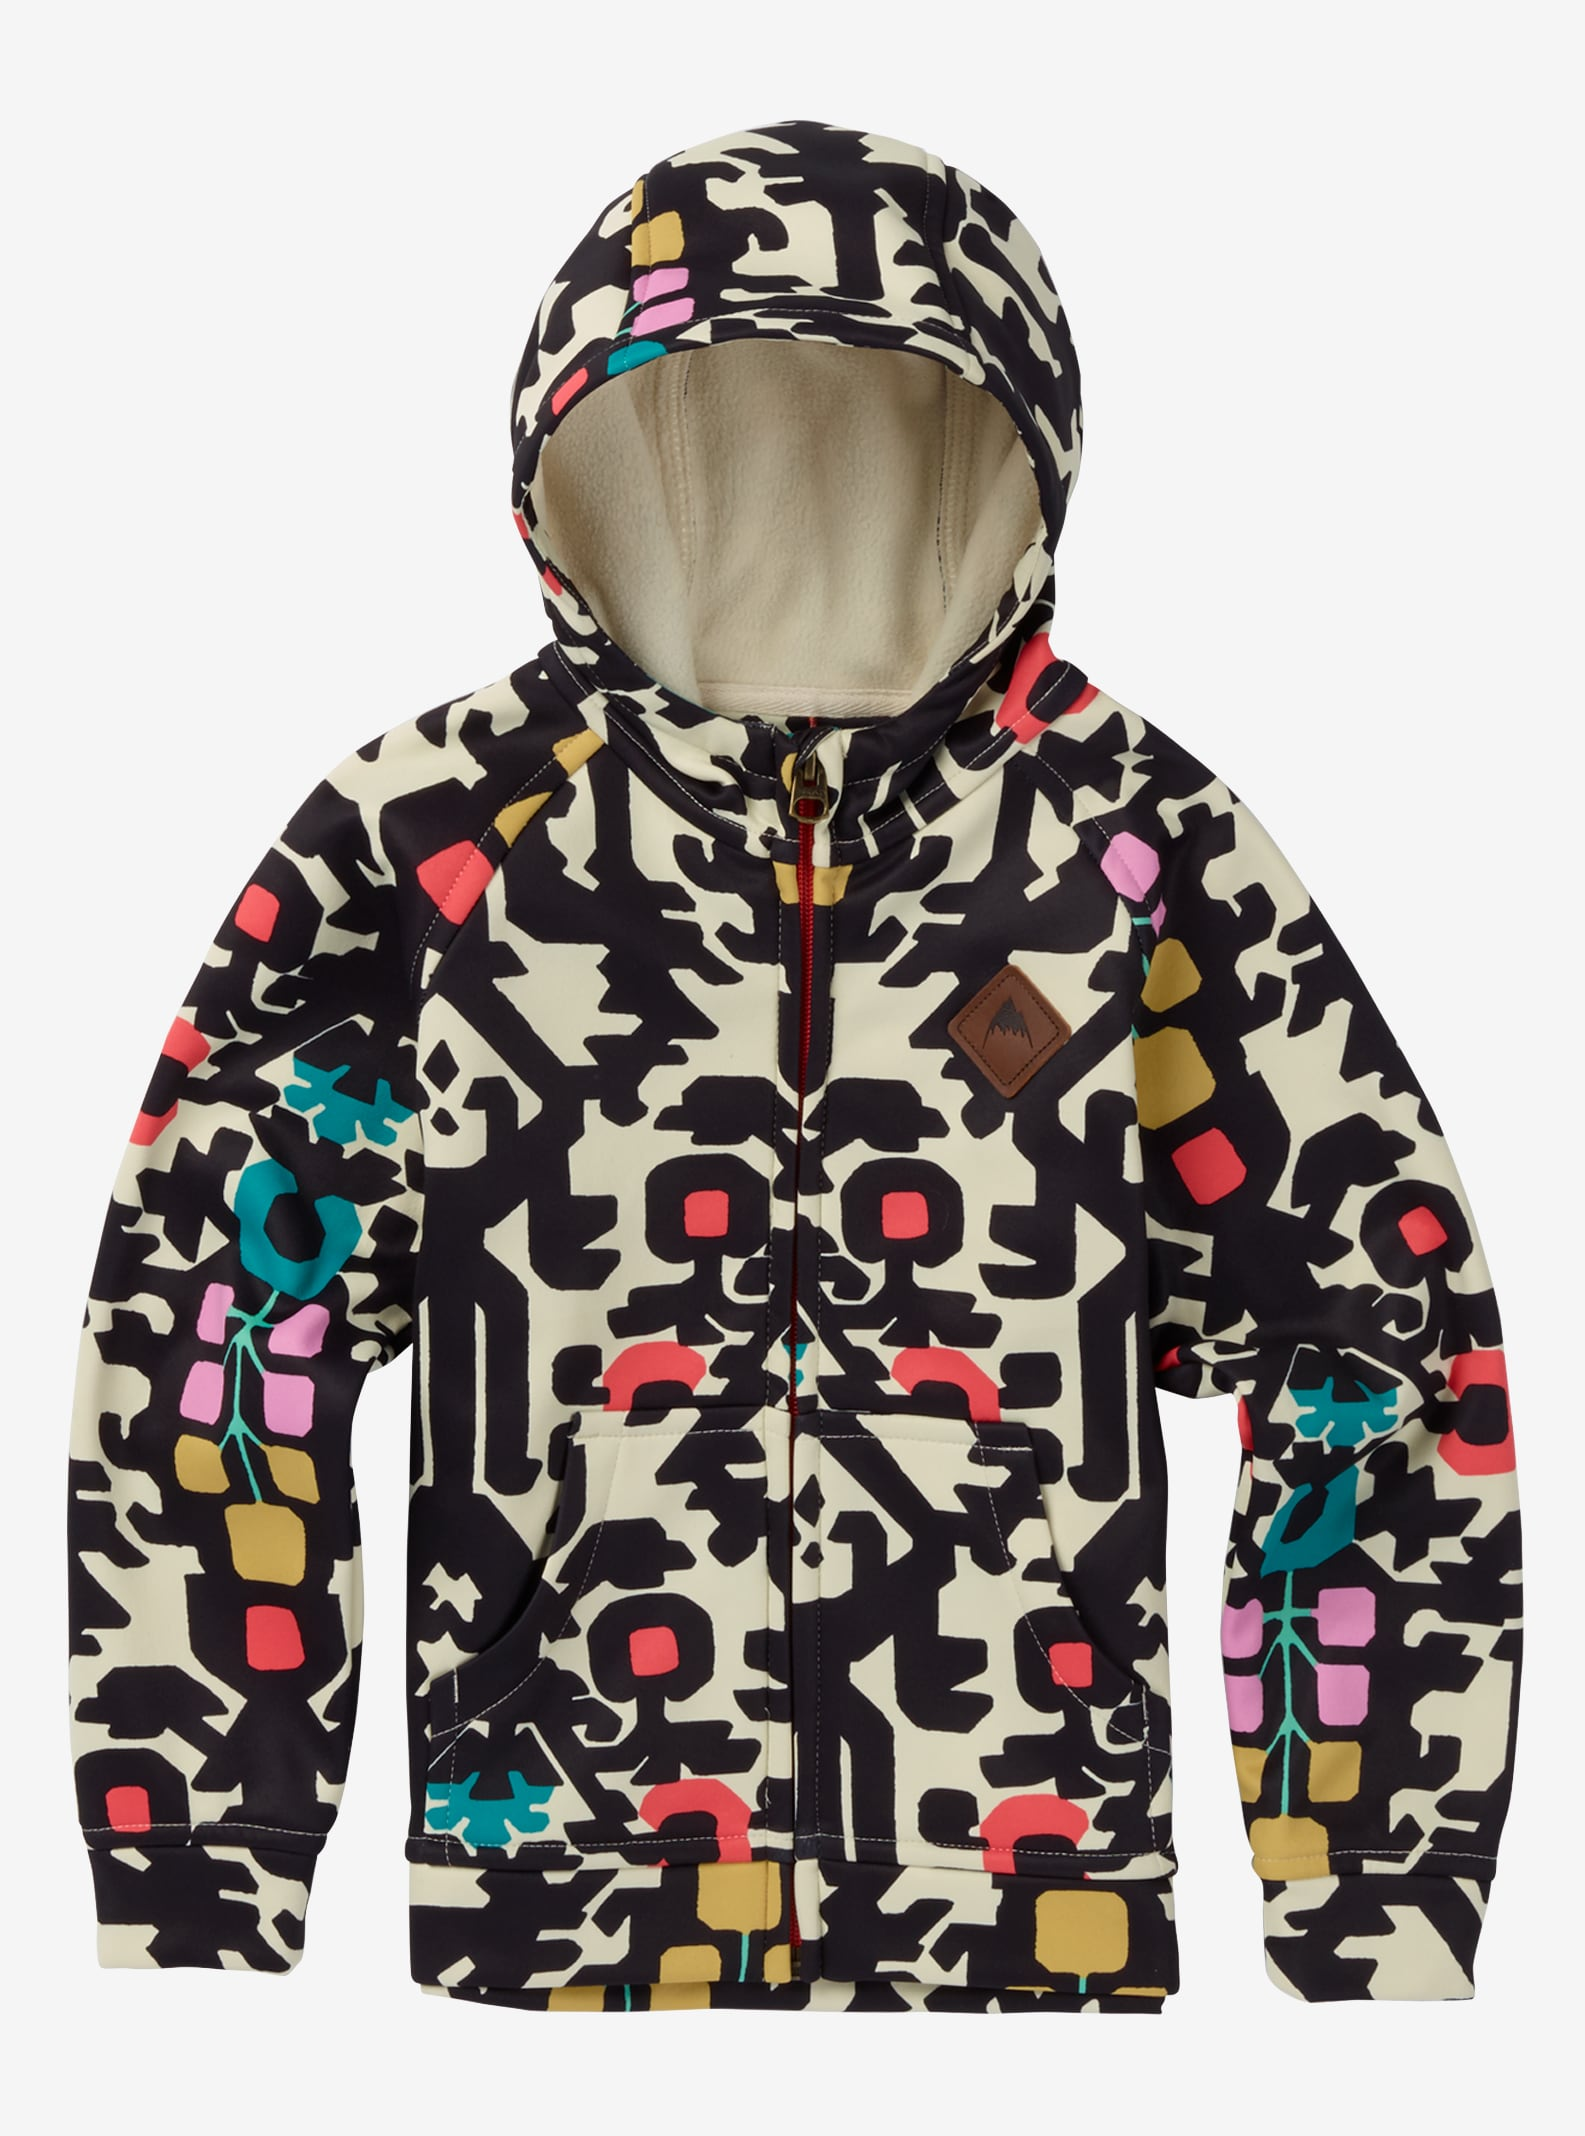 Boys' Burton Mini Bonded Full-Zip Hoodie shown in Young Folks